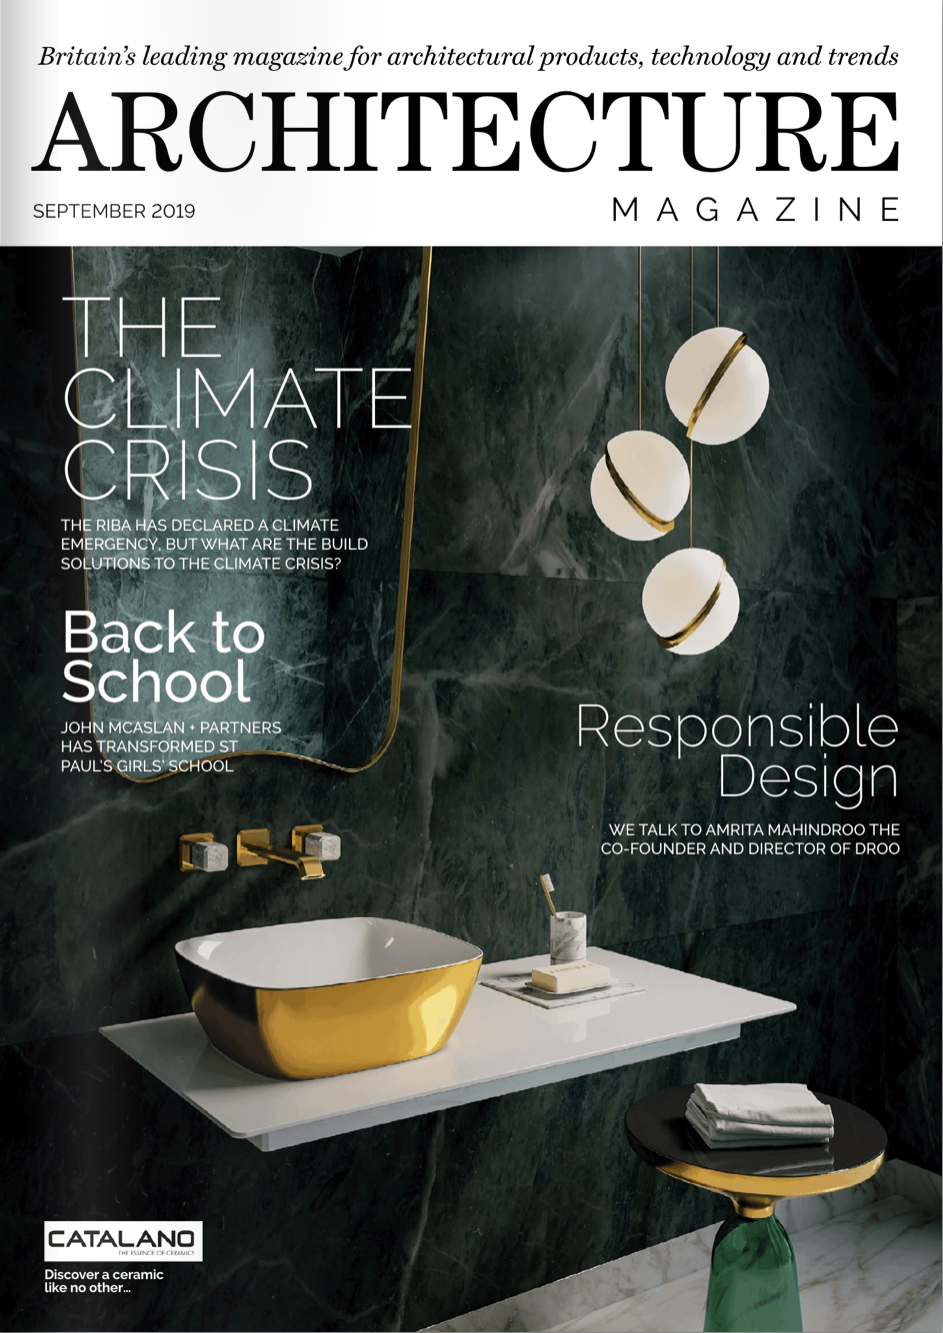 AM_00_ARCHITECTURE magazine_cover.png